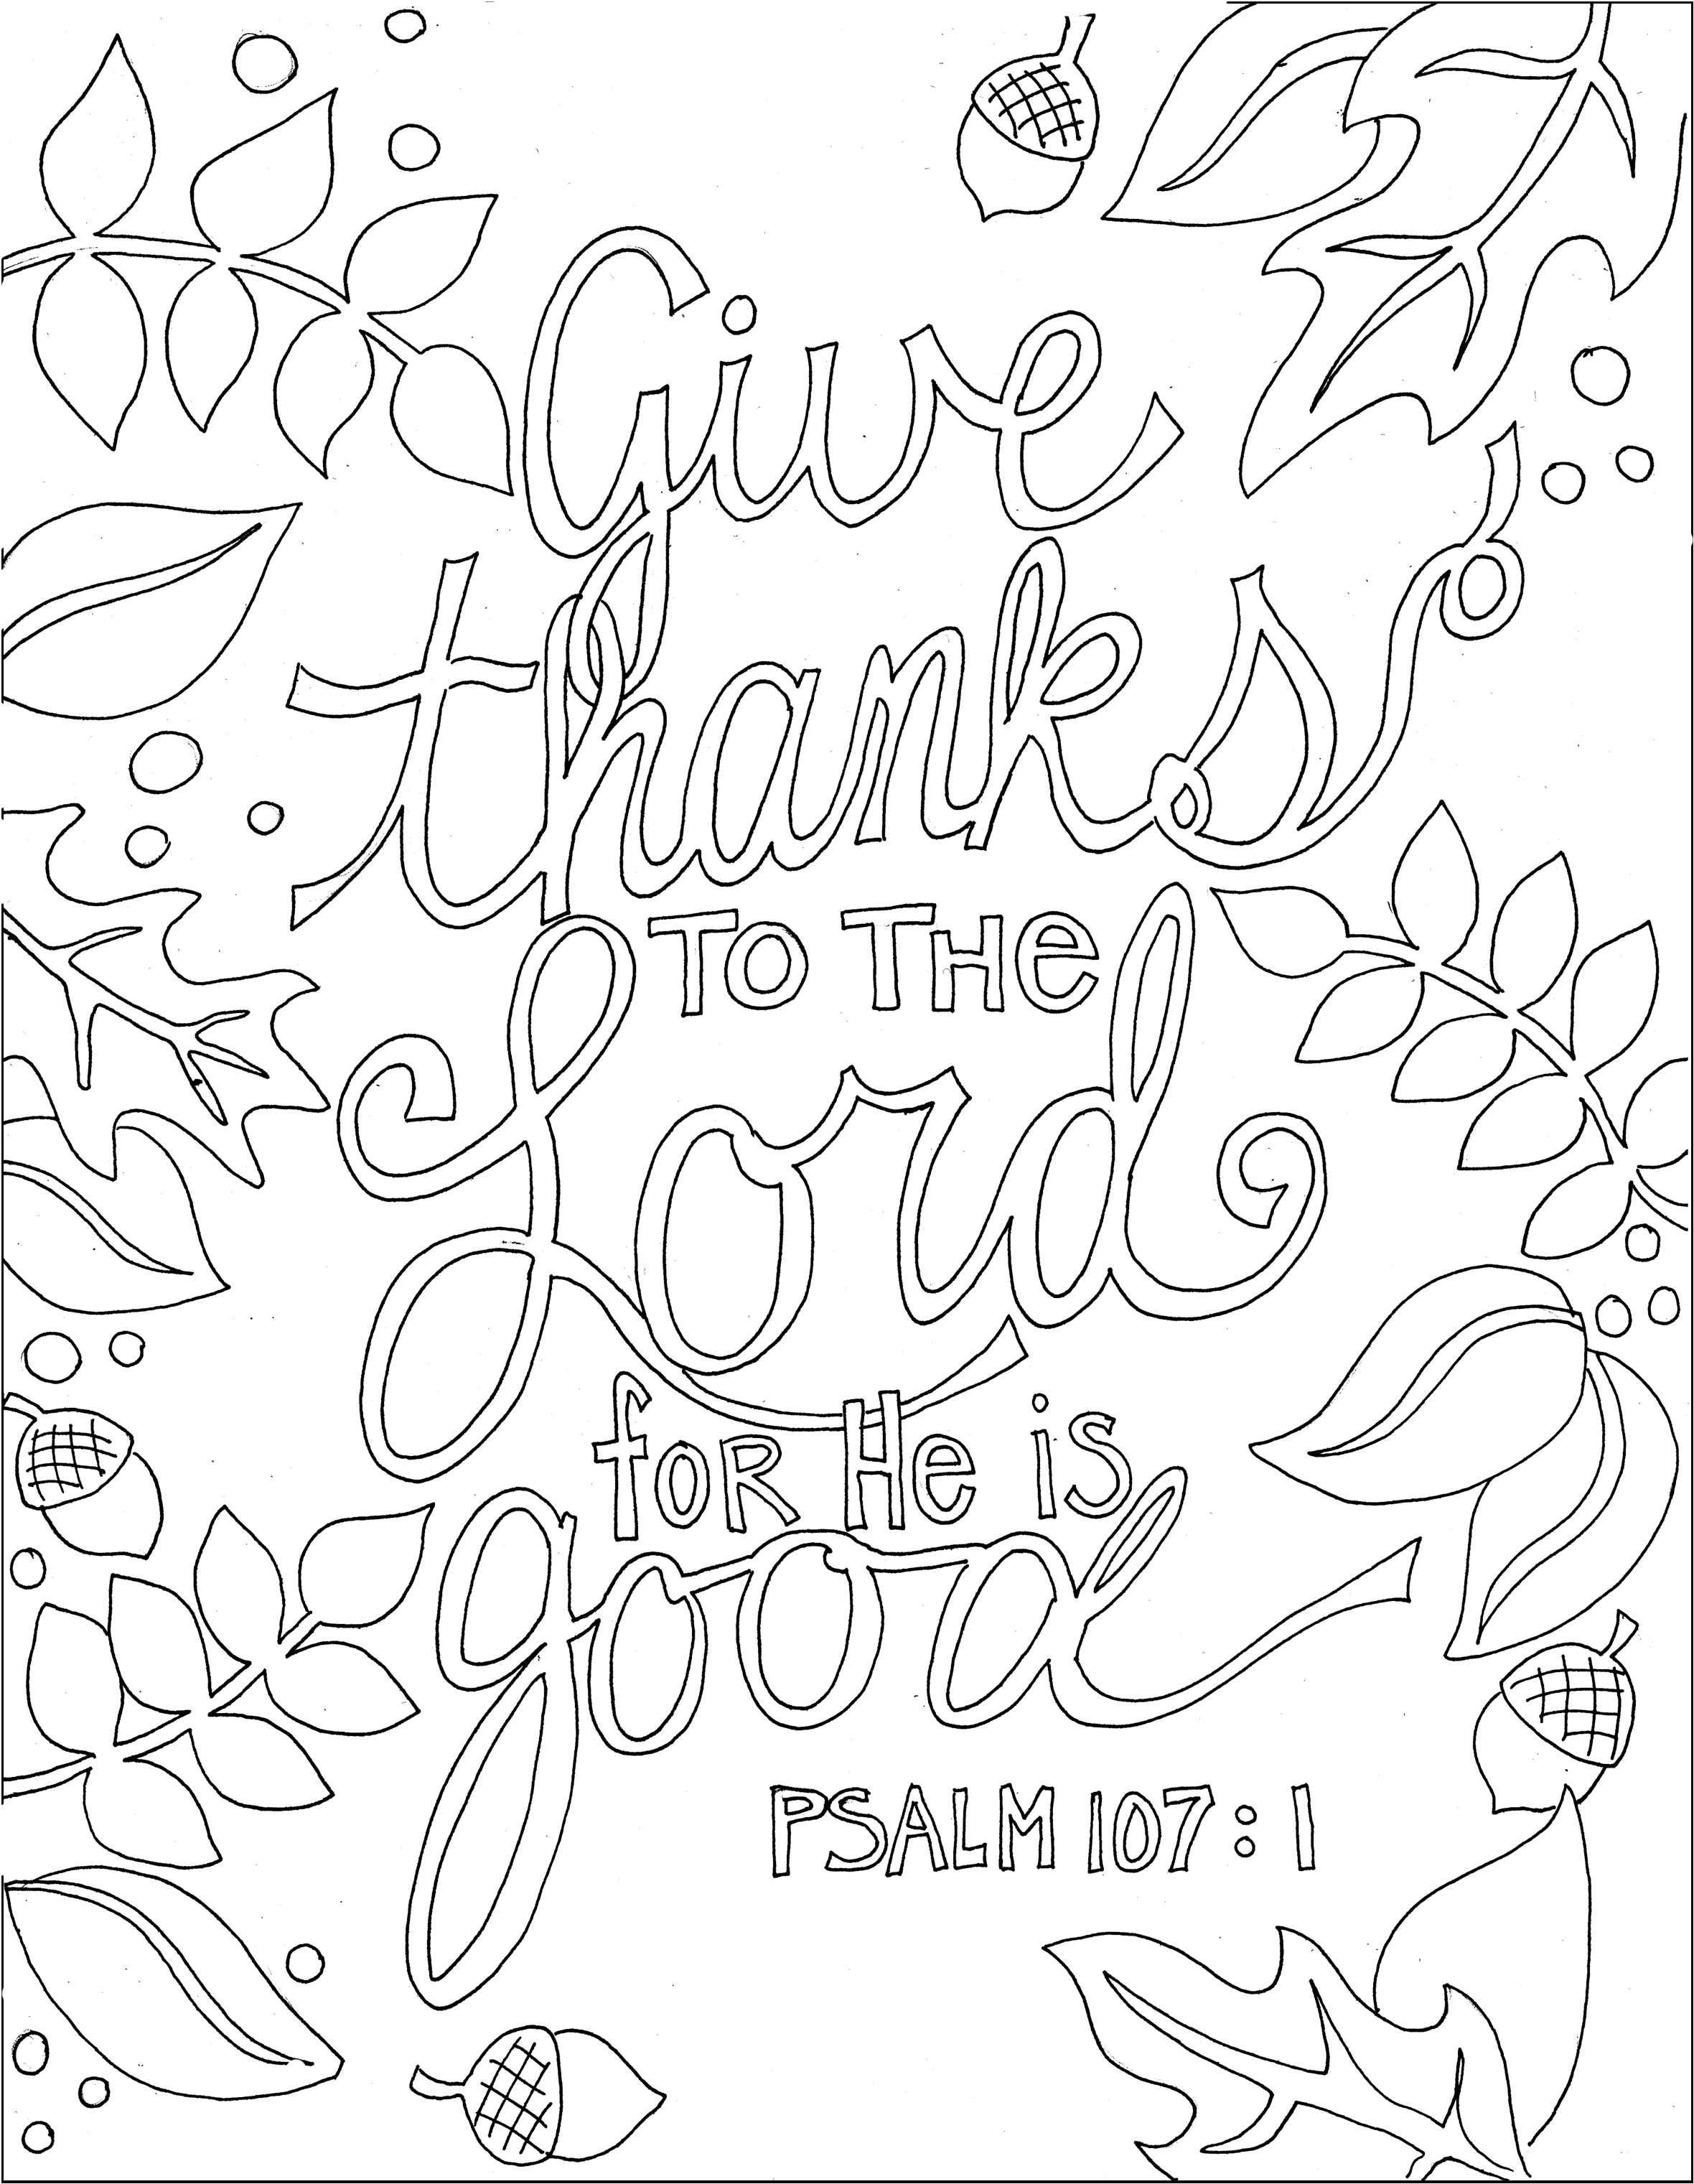 coloring bible verses for kids the best bible verse coloring pages for toddlers home for verses bible kids coloring